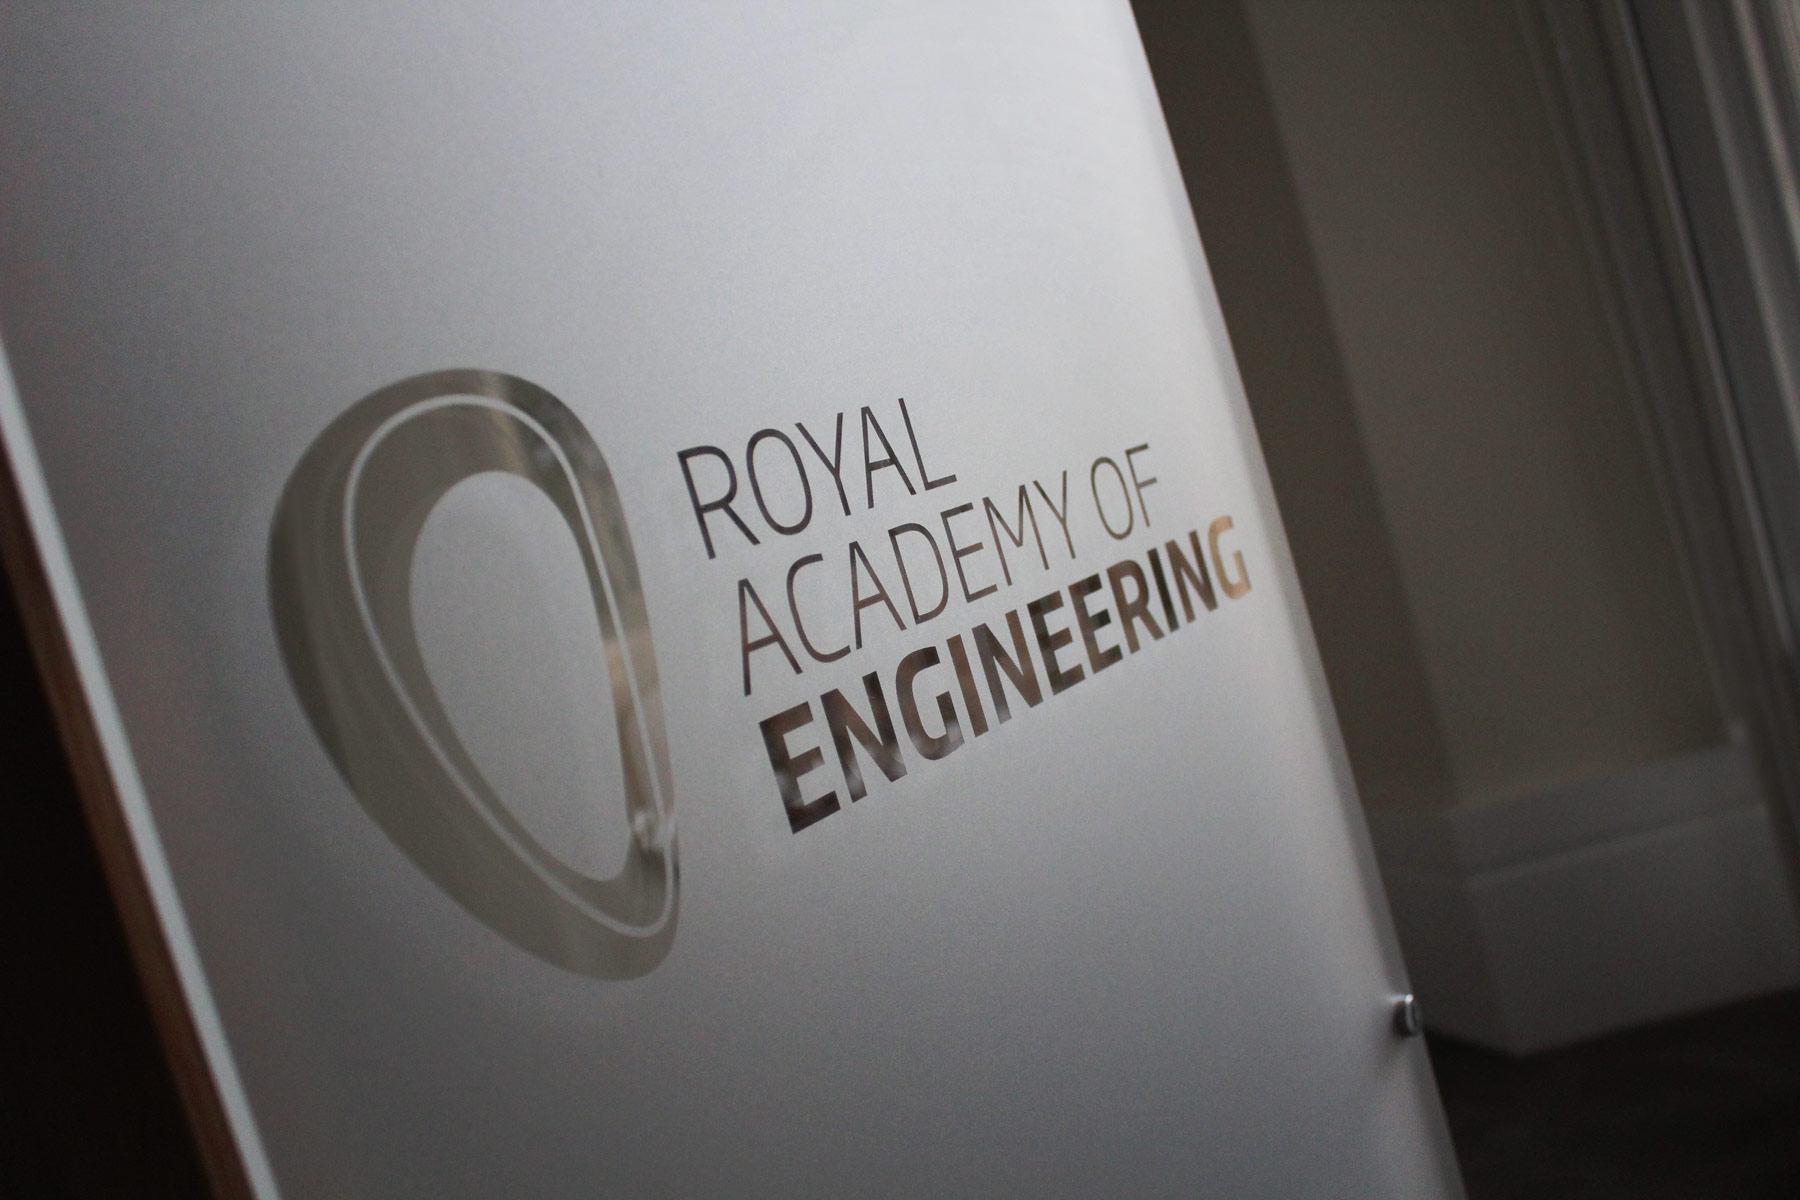 The mark has been applied to the interior of the London headquarters, using a custom die-friendly one colour mark.